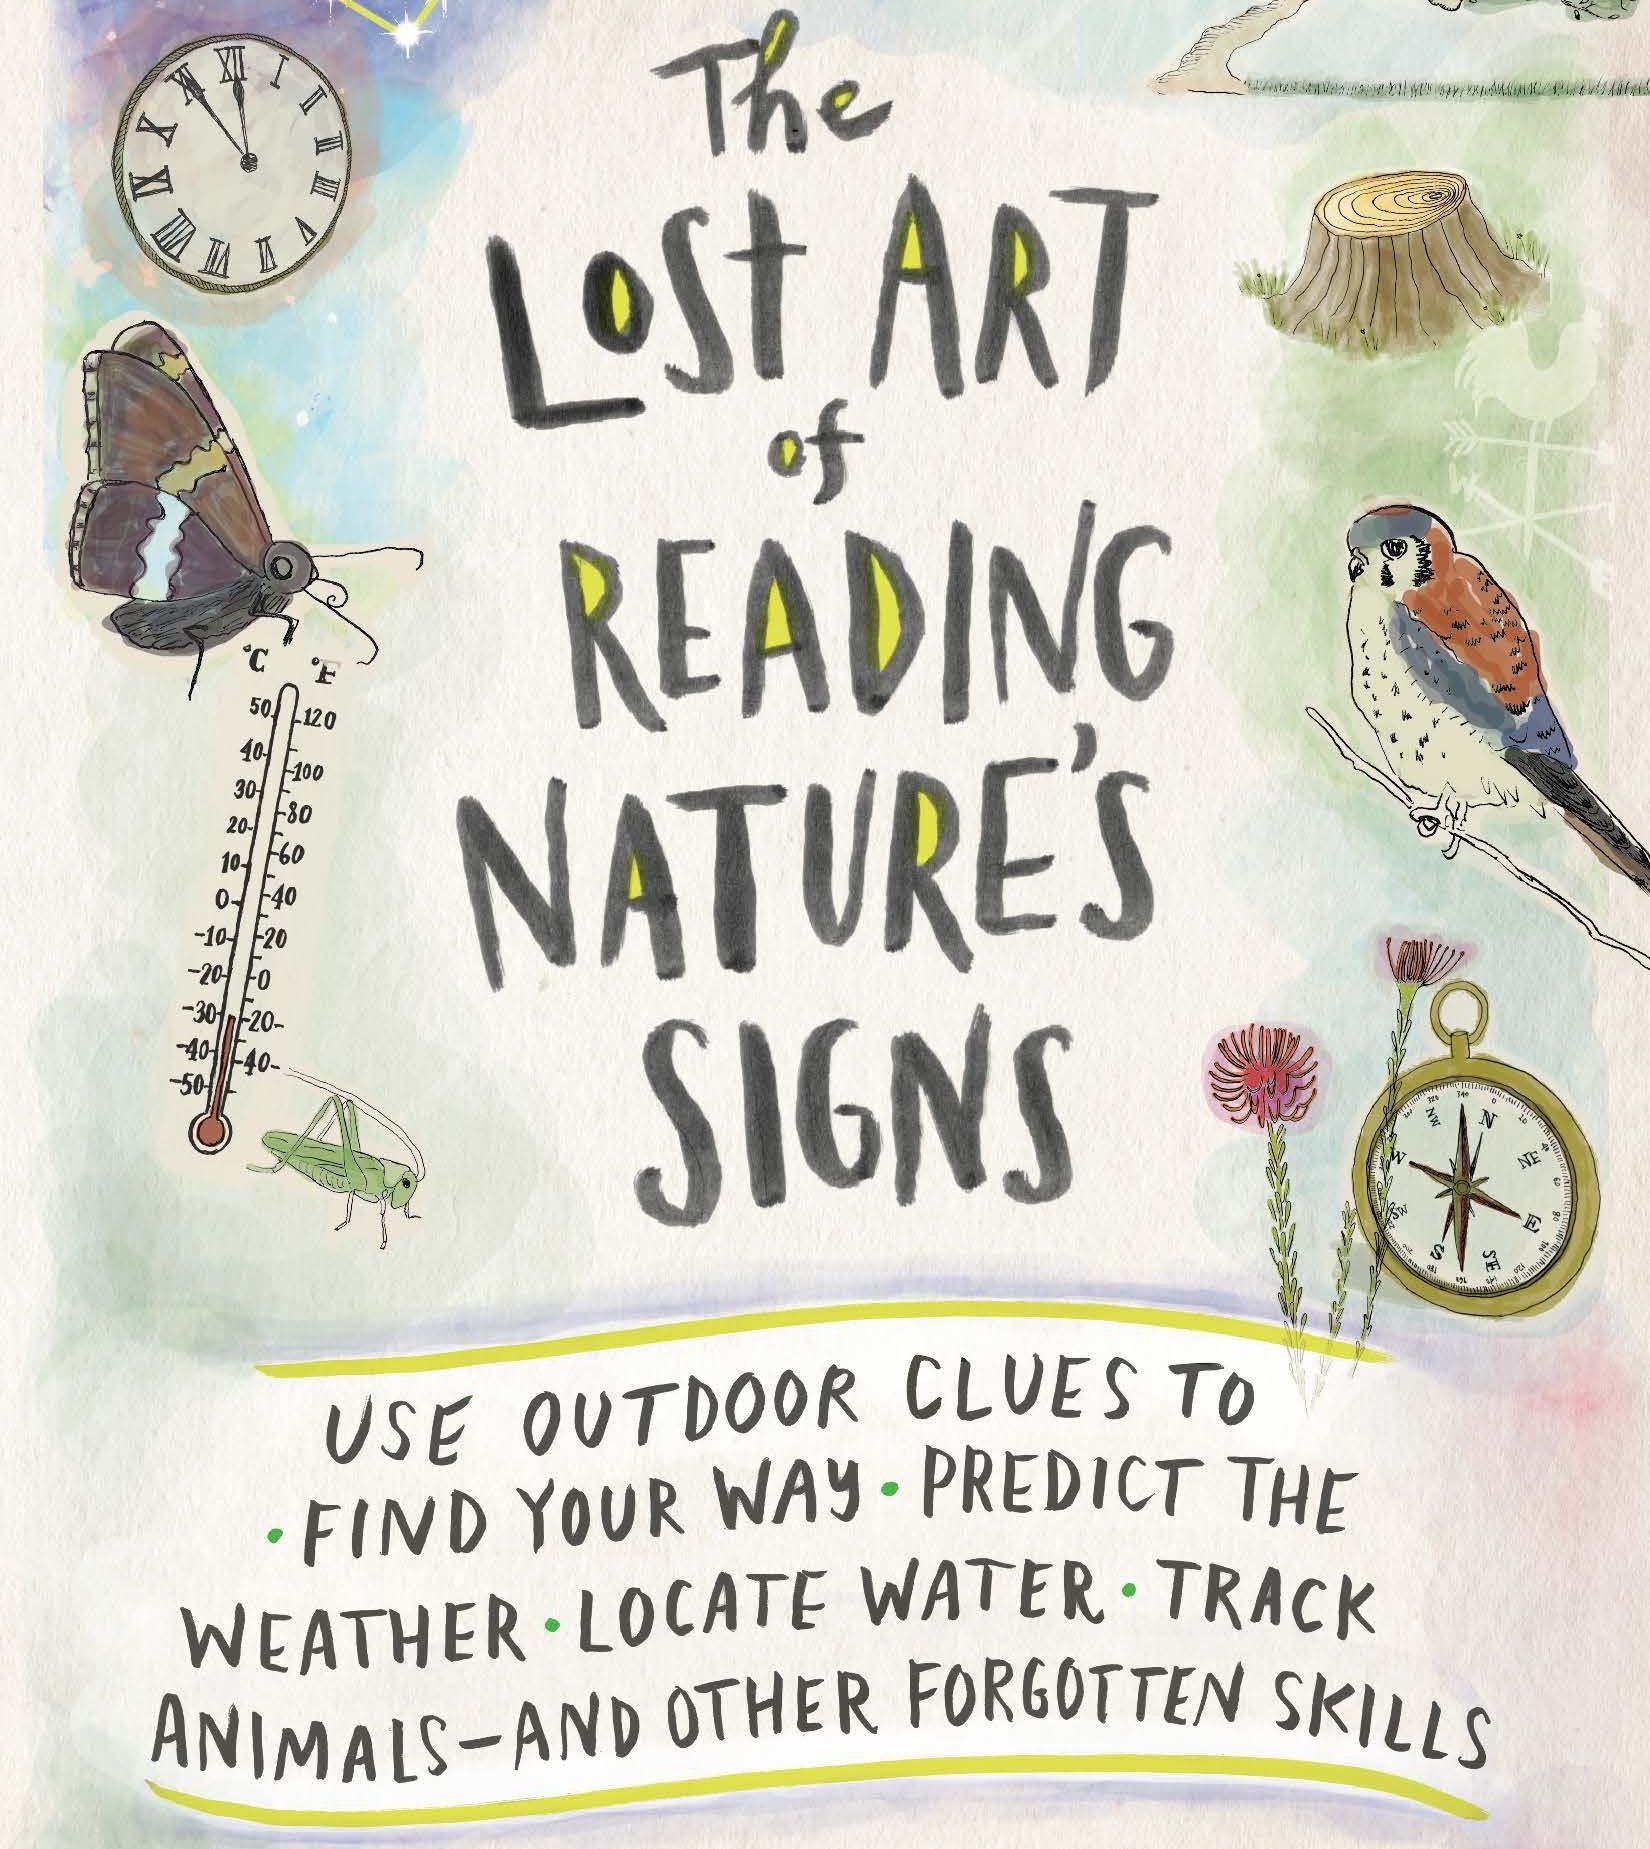 lost art of reading natures signs book cover featuring watercolor drawings